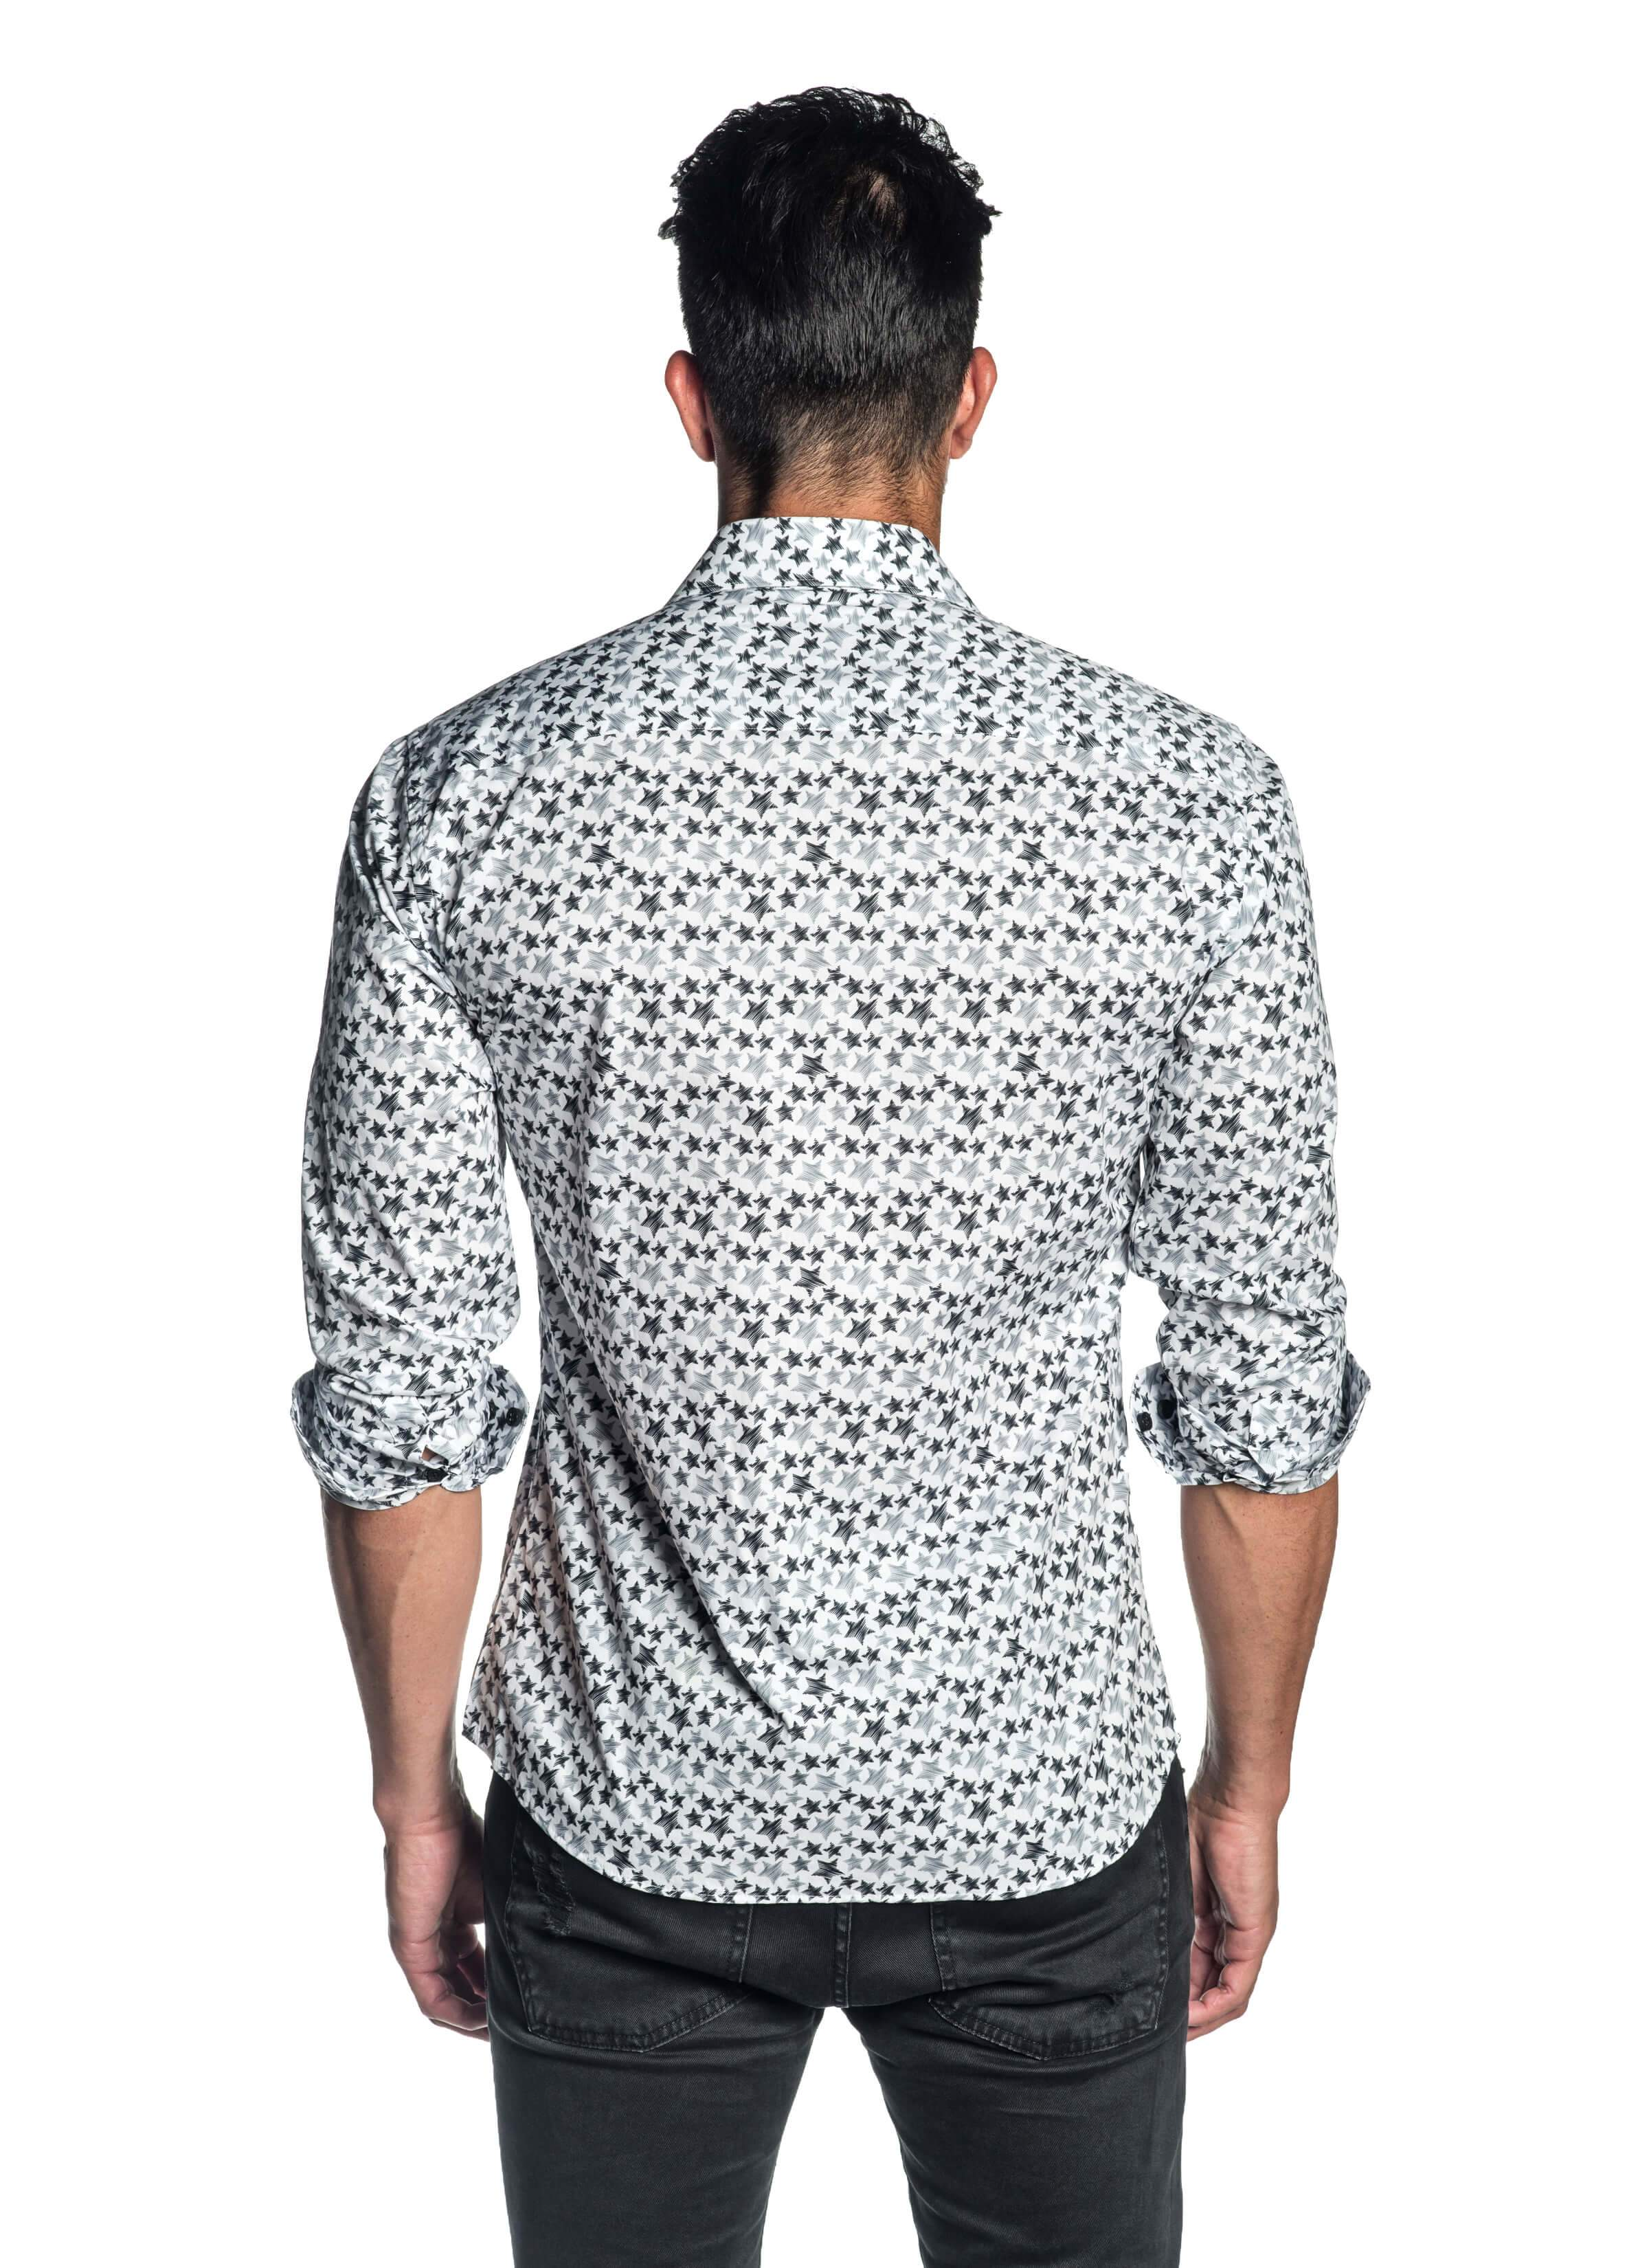 White Star Printed Shirt for Men - Back - T-518 - Jared Lang Collection